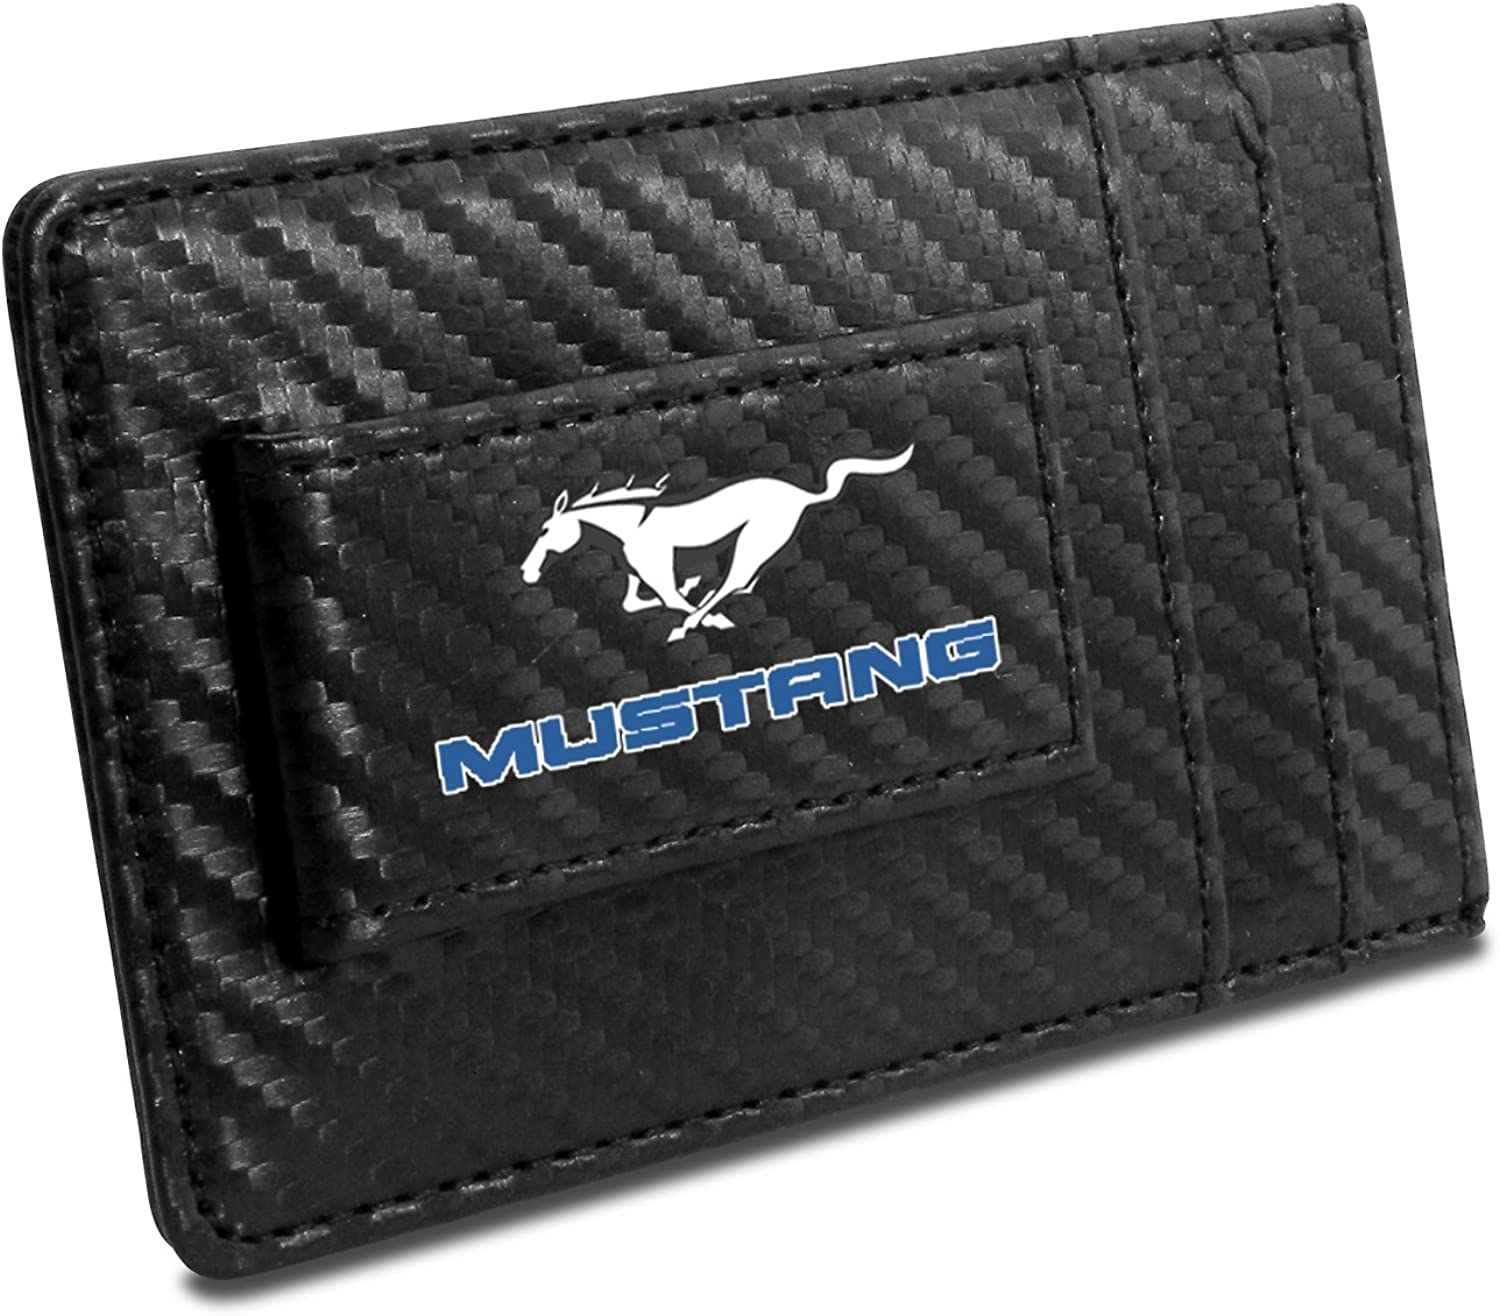 Ford Mustang in Blue Black Carbon Fiber Leather Wallet RFID Block Card Case Money Clip